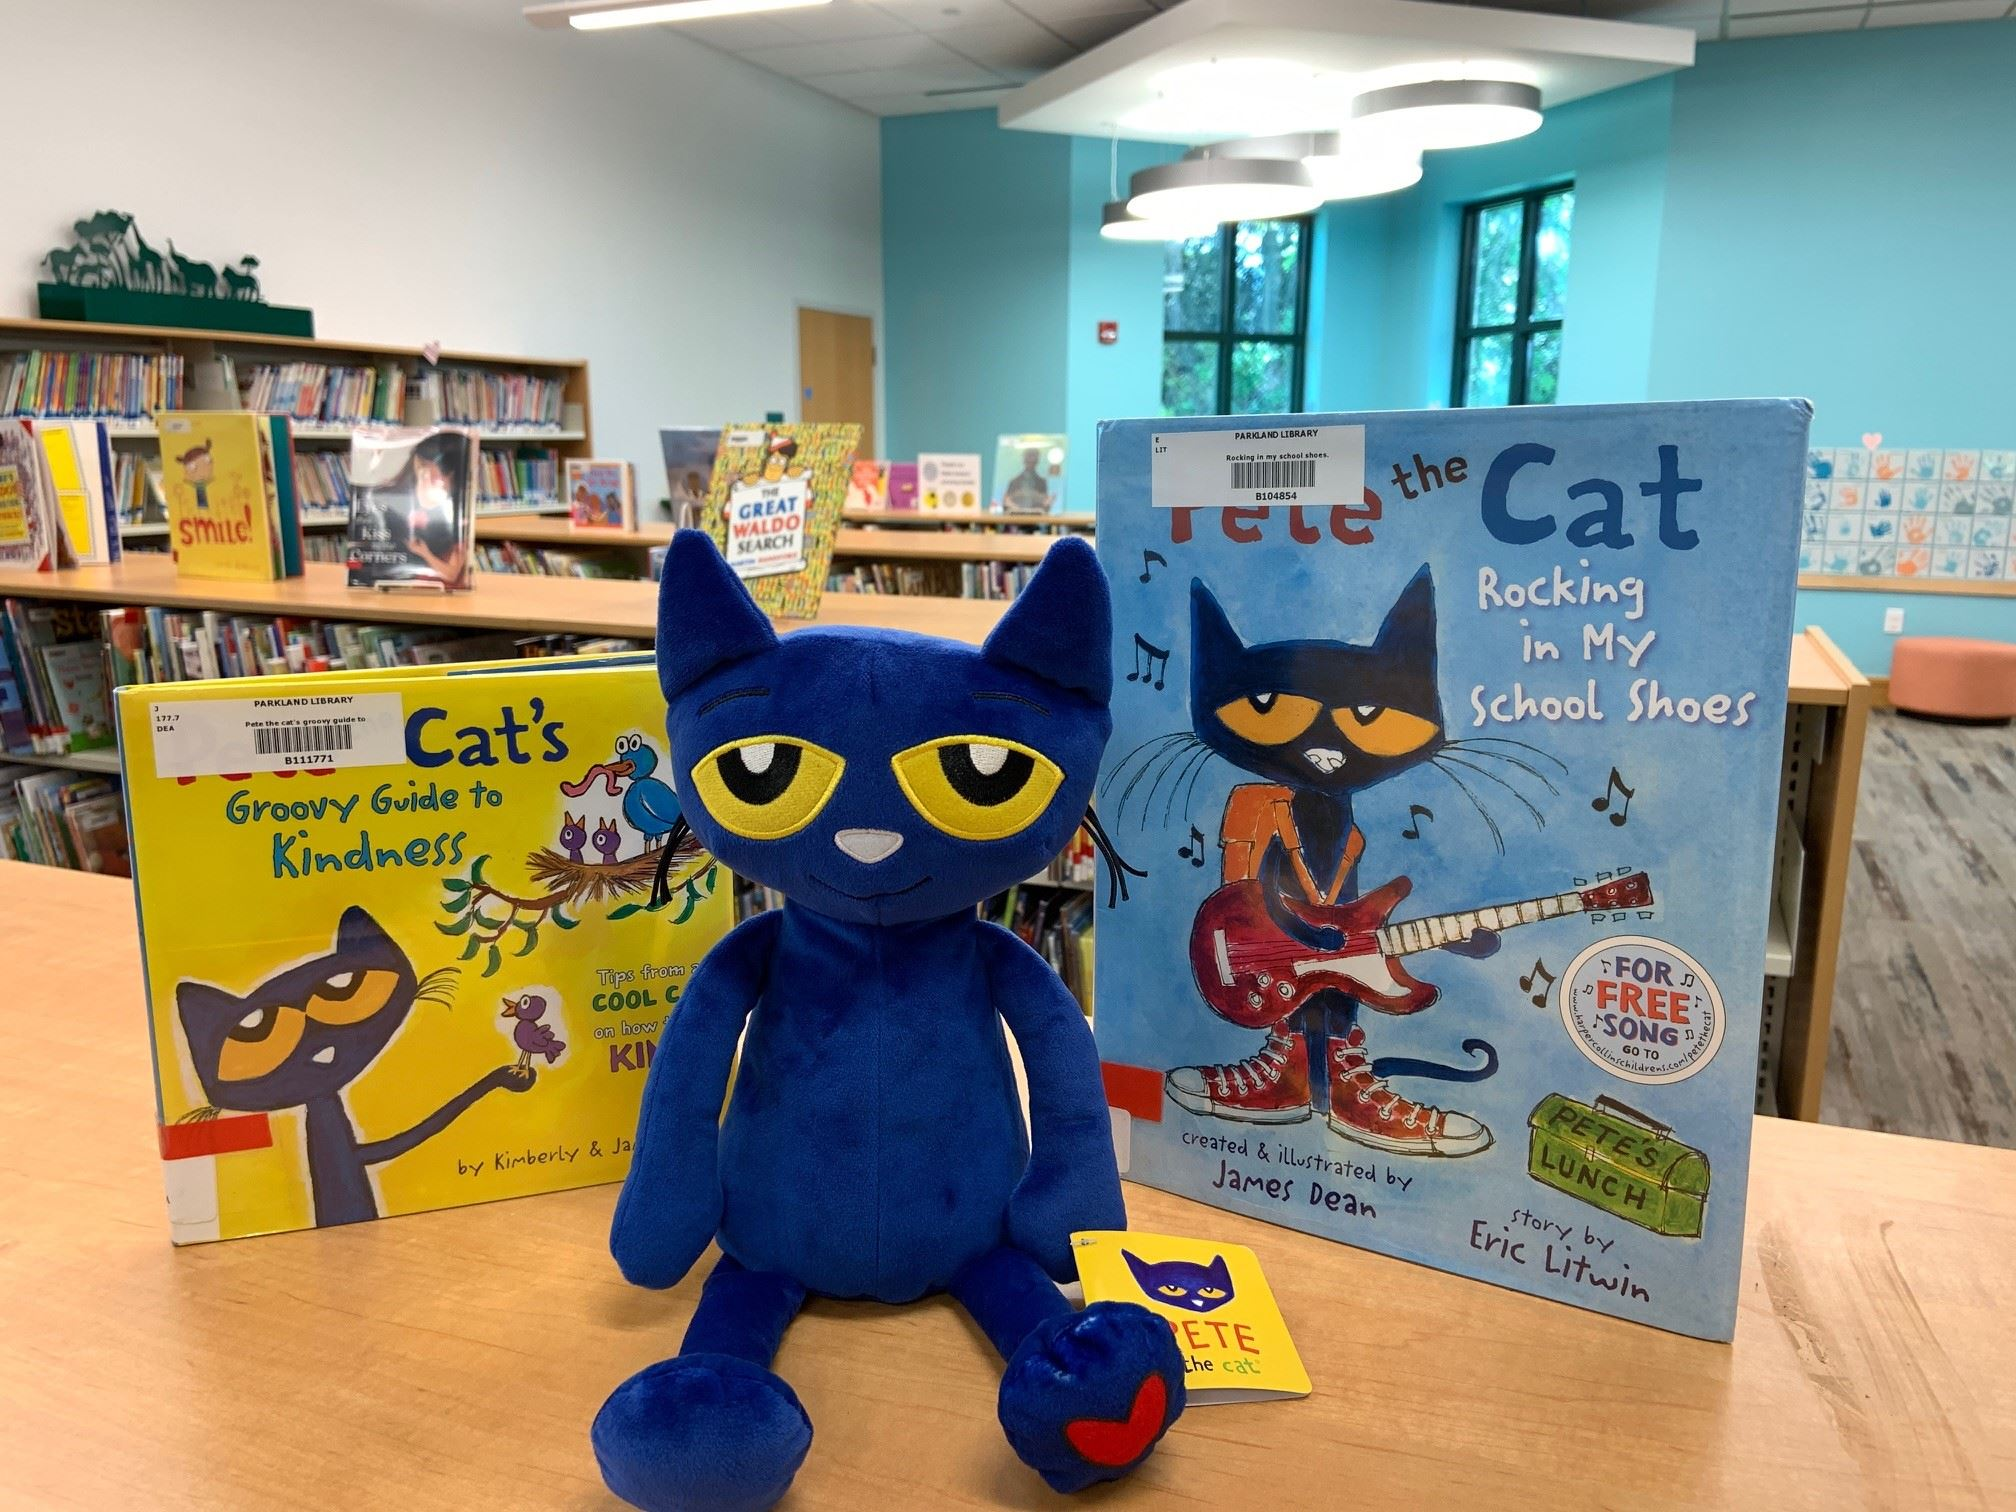 Pete the Cat with books